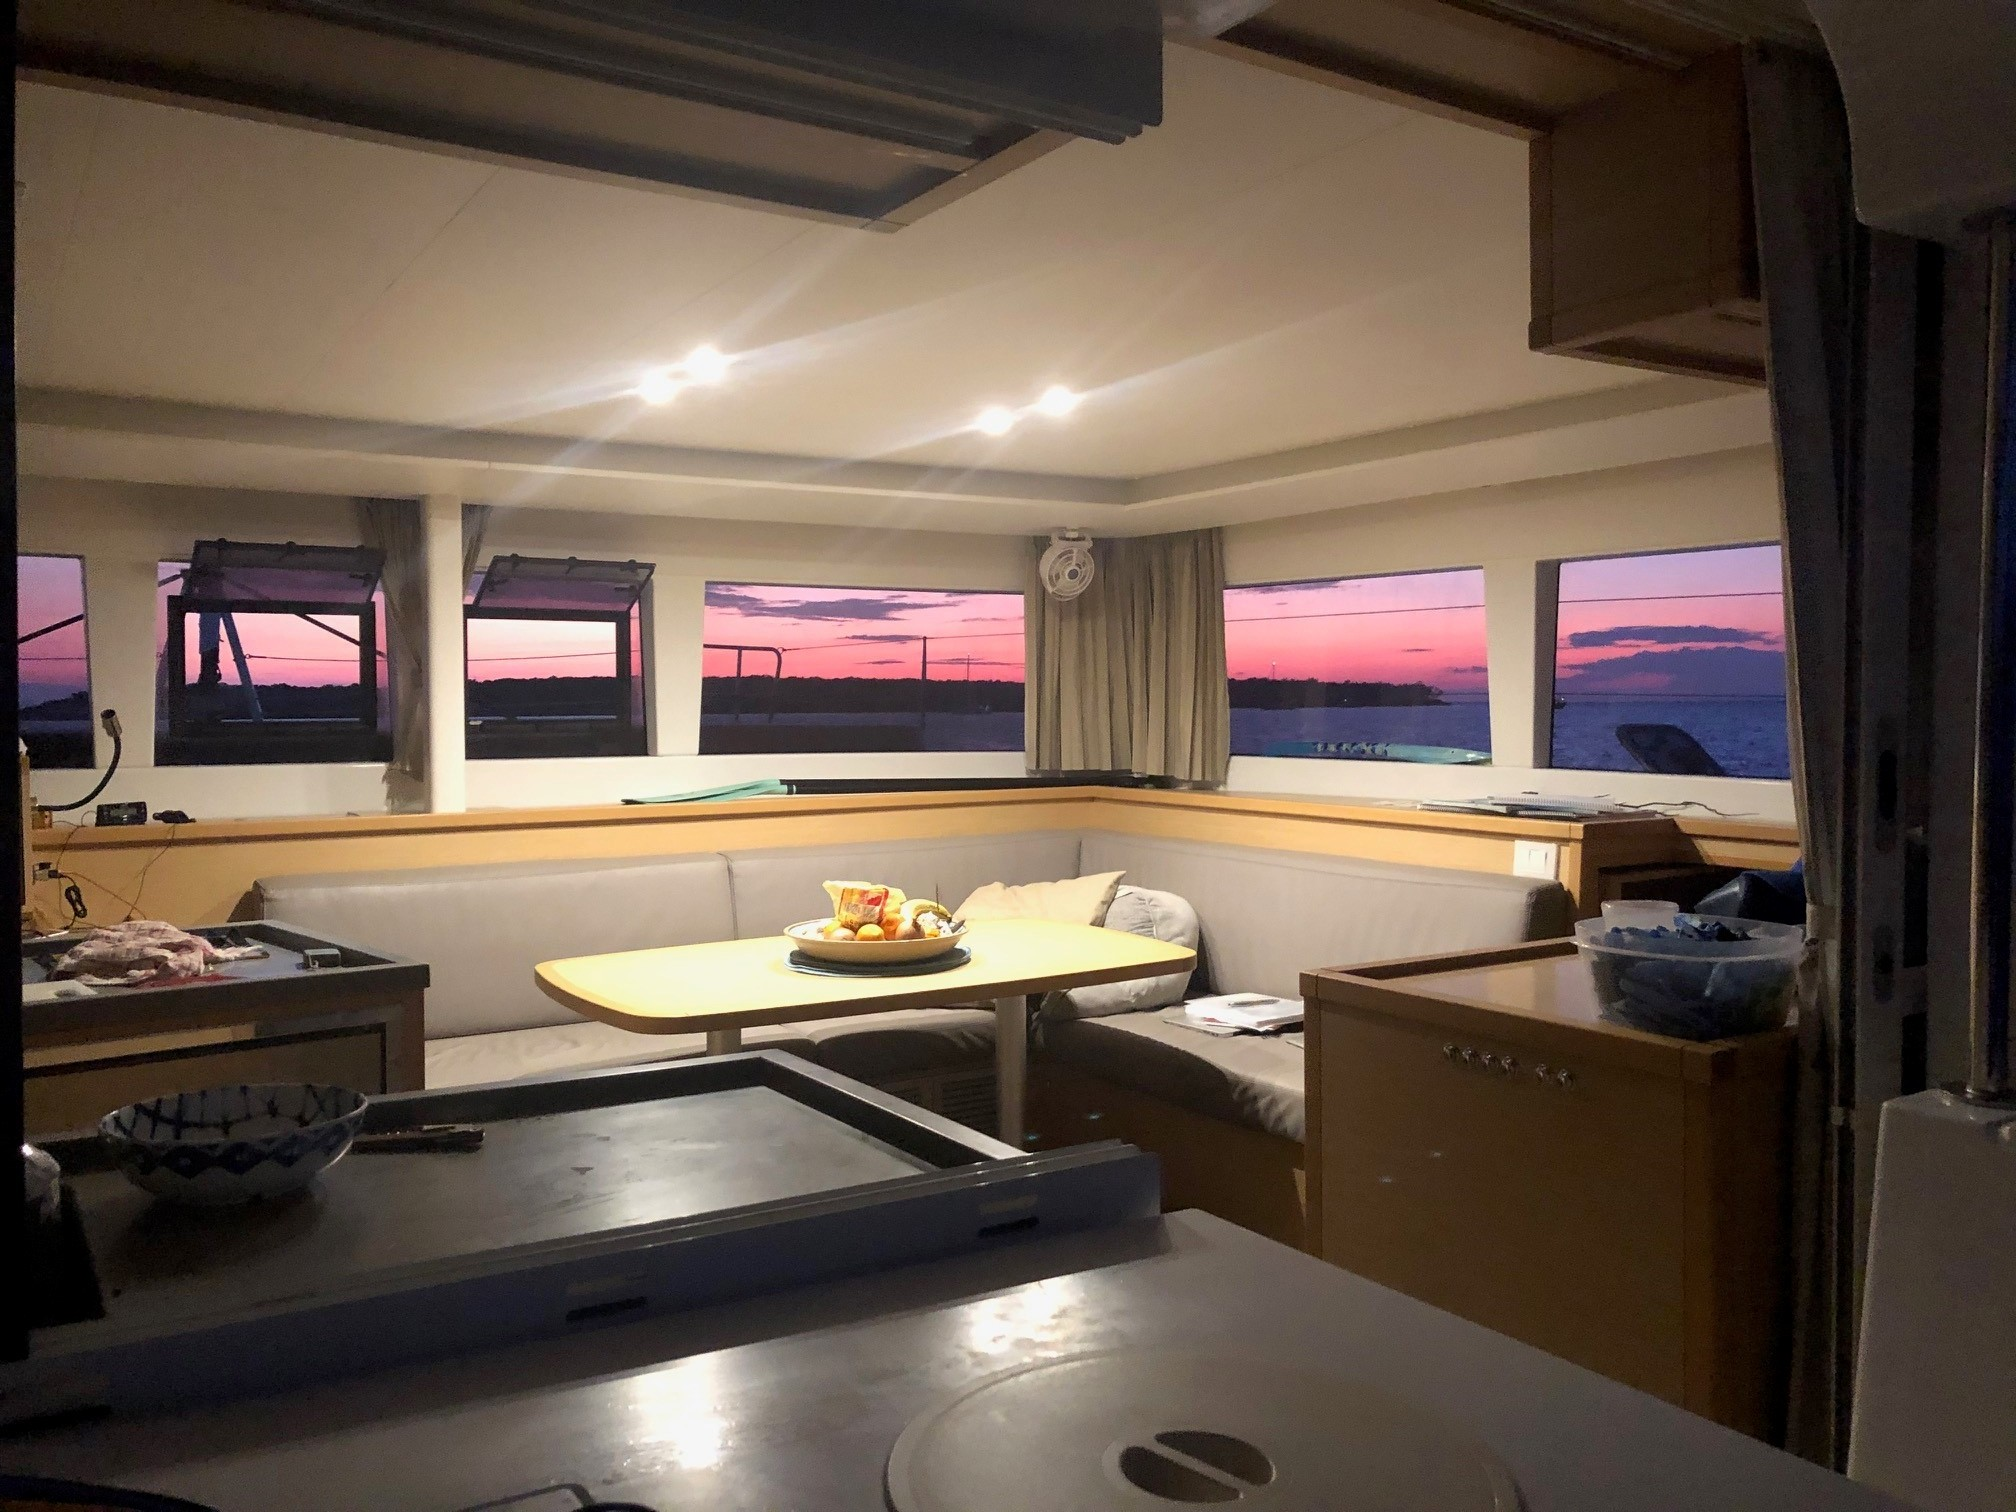 Used Sail Catamaran for Sale 2017 Lagoon 450F Layout & Accommodations